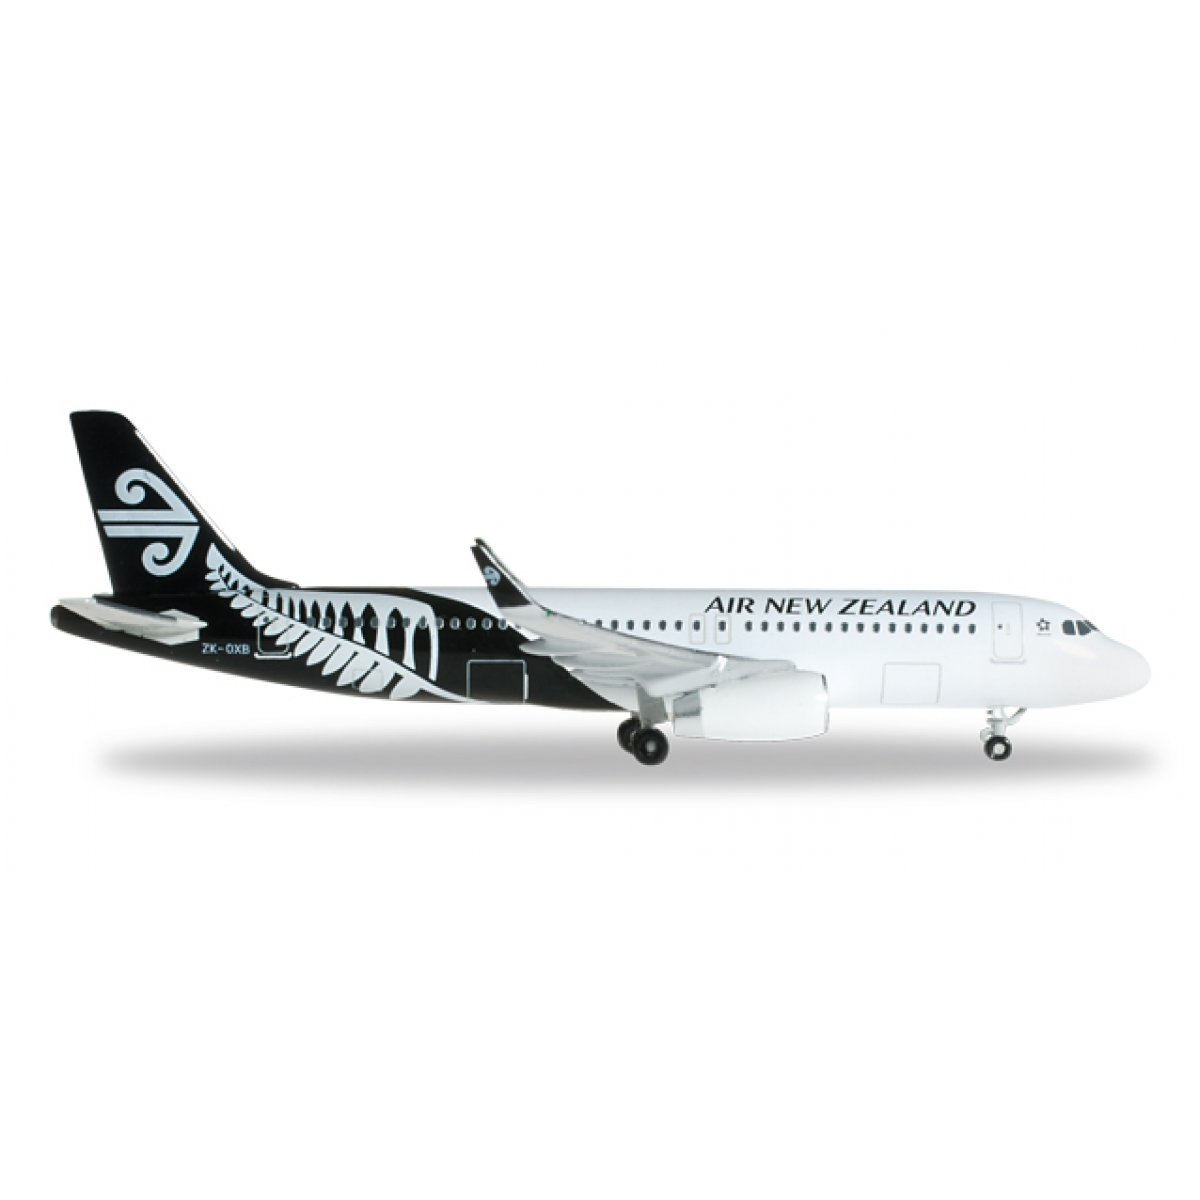 Flugzeugmodell Air New Zealand Airbus A320 mit sharklets 1/500